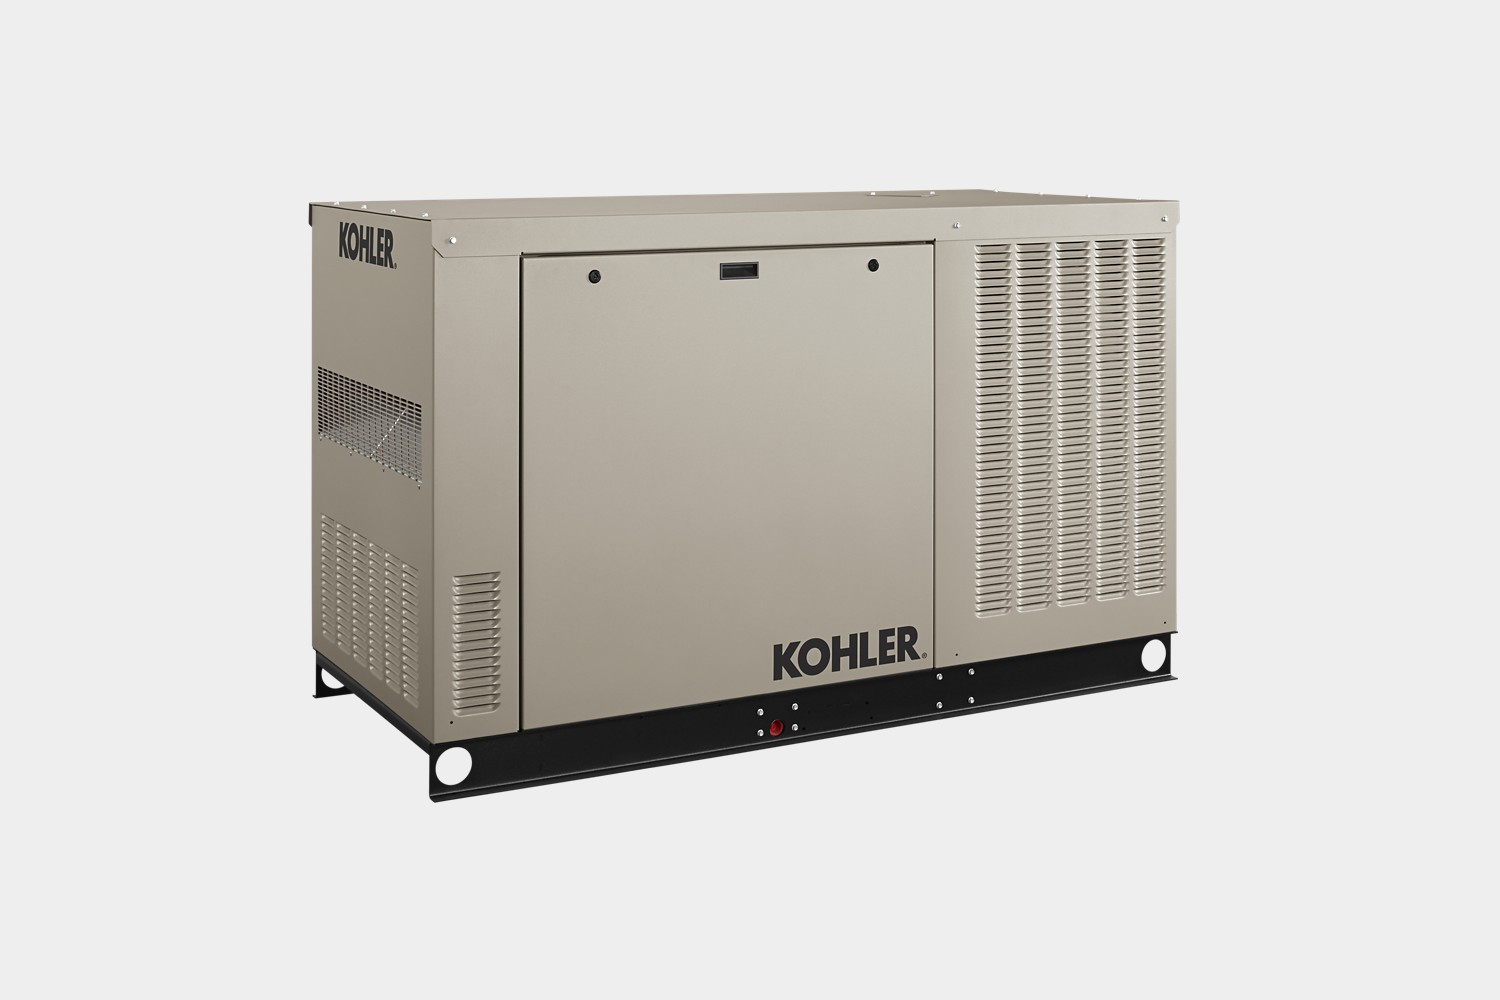 A New Standby Generator For Large Homes, Small Businesses